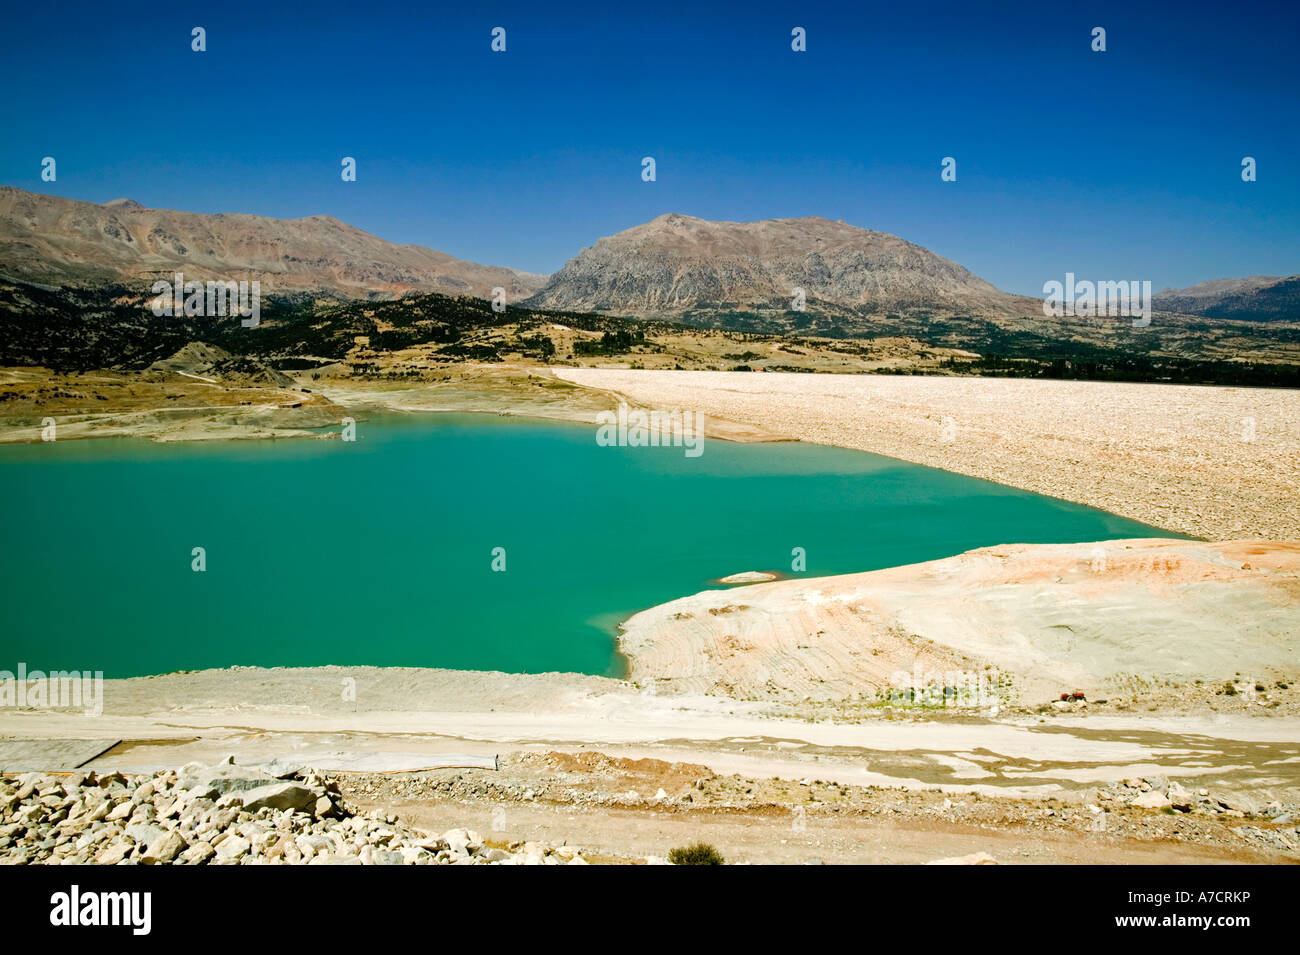 Dam and resevoir in the Bey Mountains National Park, South Western Turkey - Stock Image